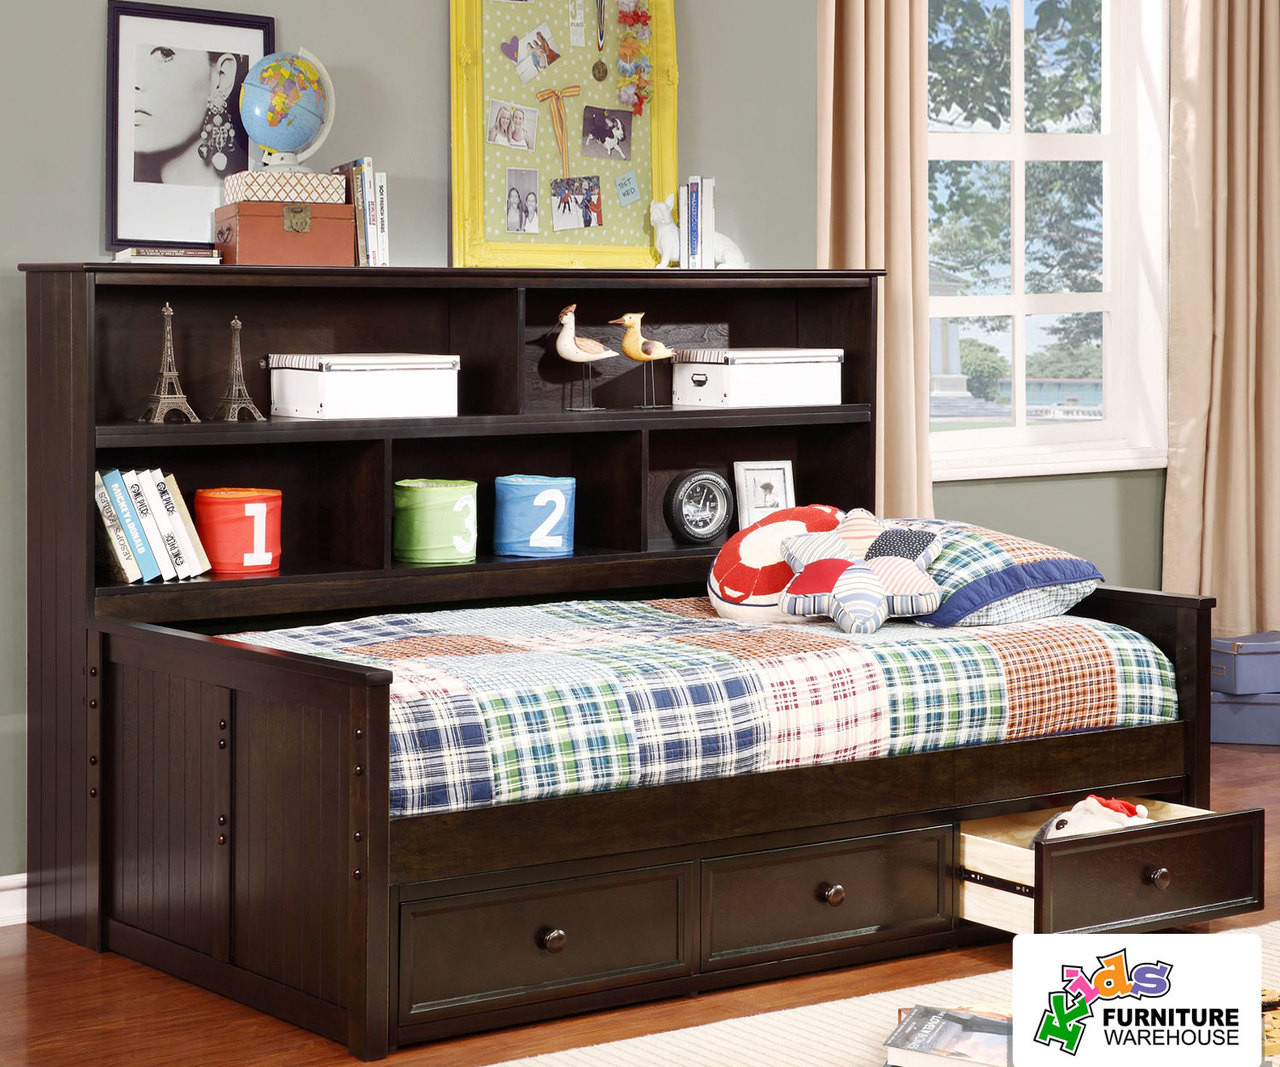 Allen House Bookcase Captains Daybed Twin Size Graphite